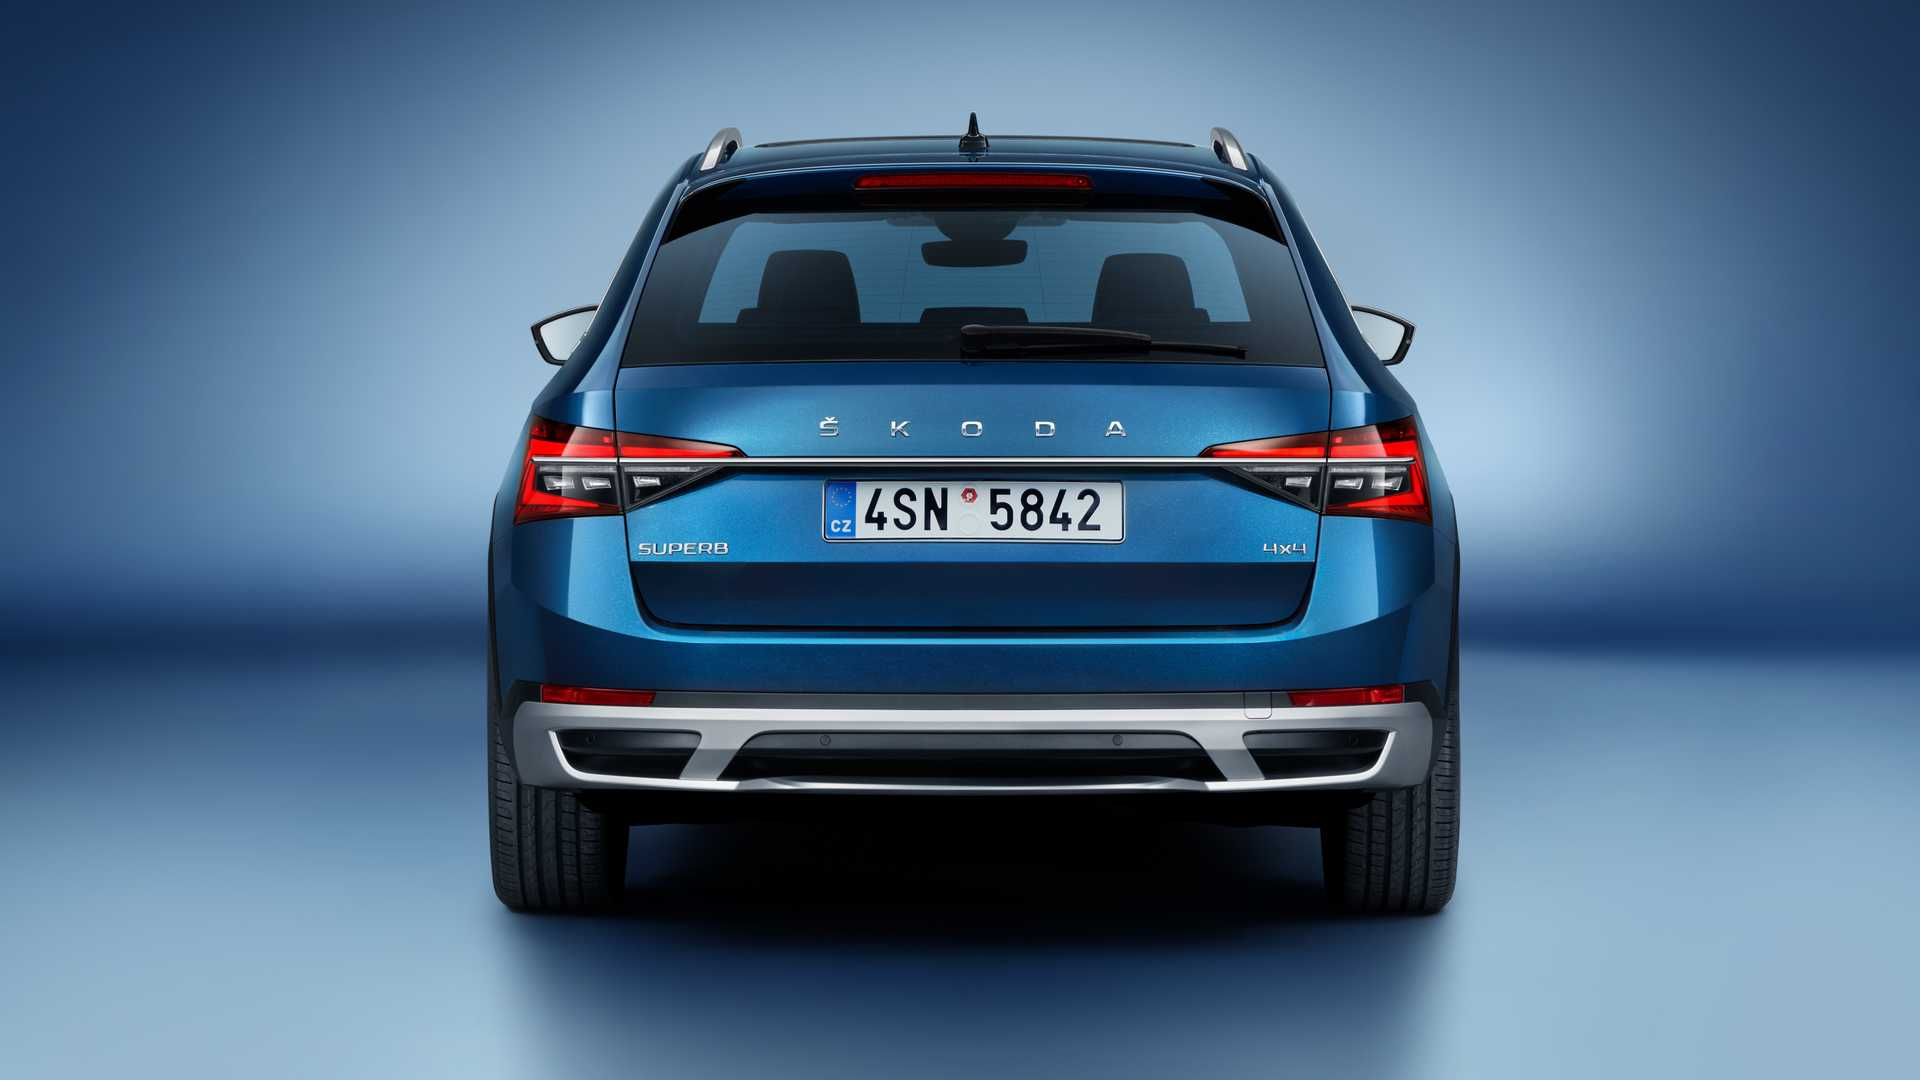 2020 Skoda Superb Scout Revealed, Being Pitched As An SUV ...